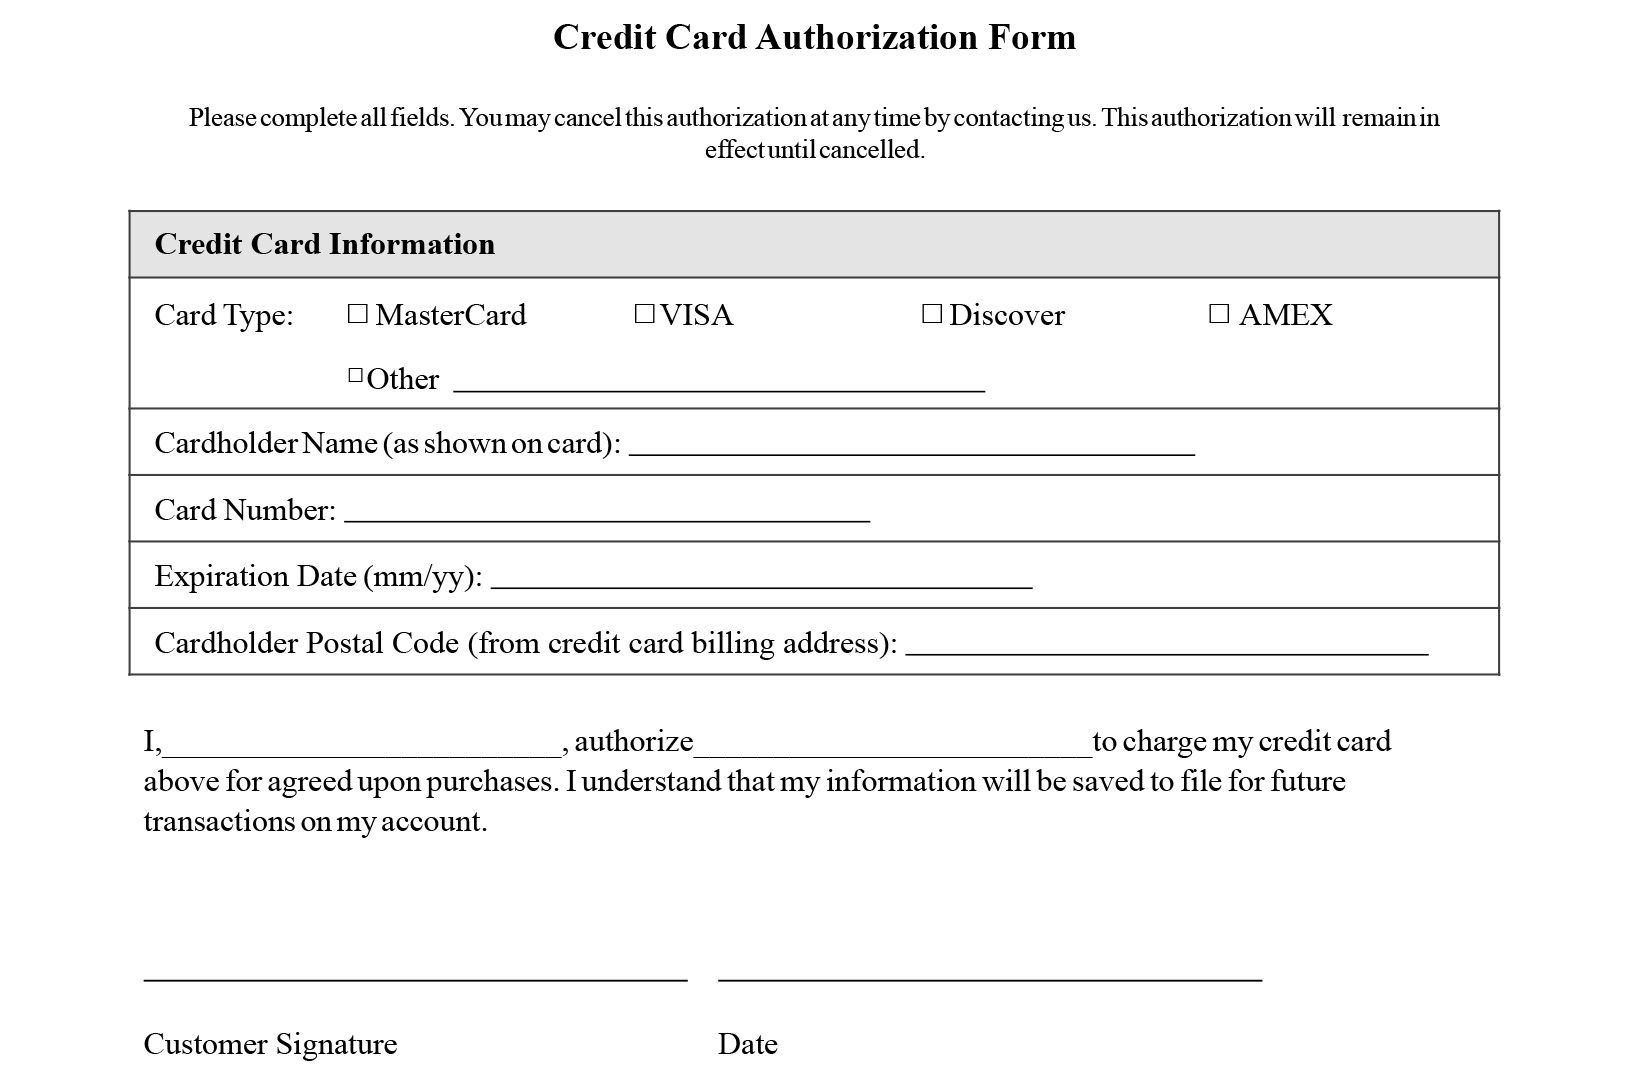 003 Fascinating One Time Credit Card Payment Authorization Form Template Sample Full